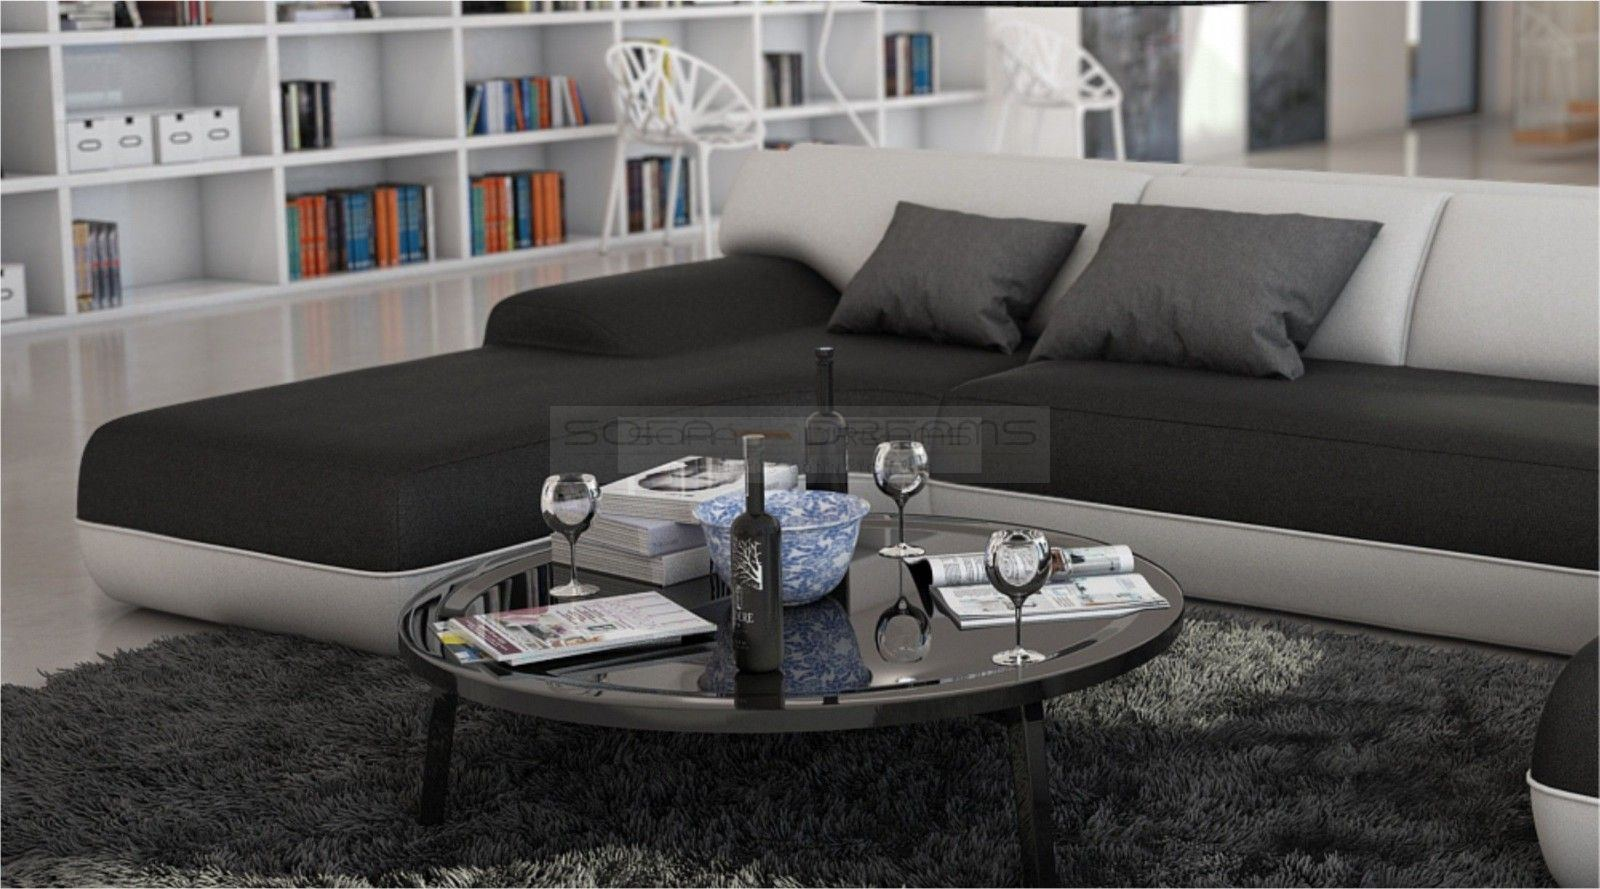 interior design sofa corner couch vida u shaped. Black Bedroom Furniture Sets. Home Design Ideas